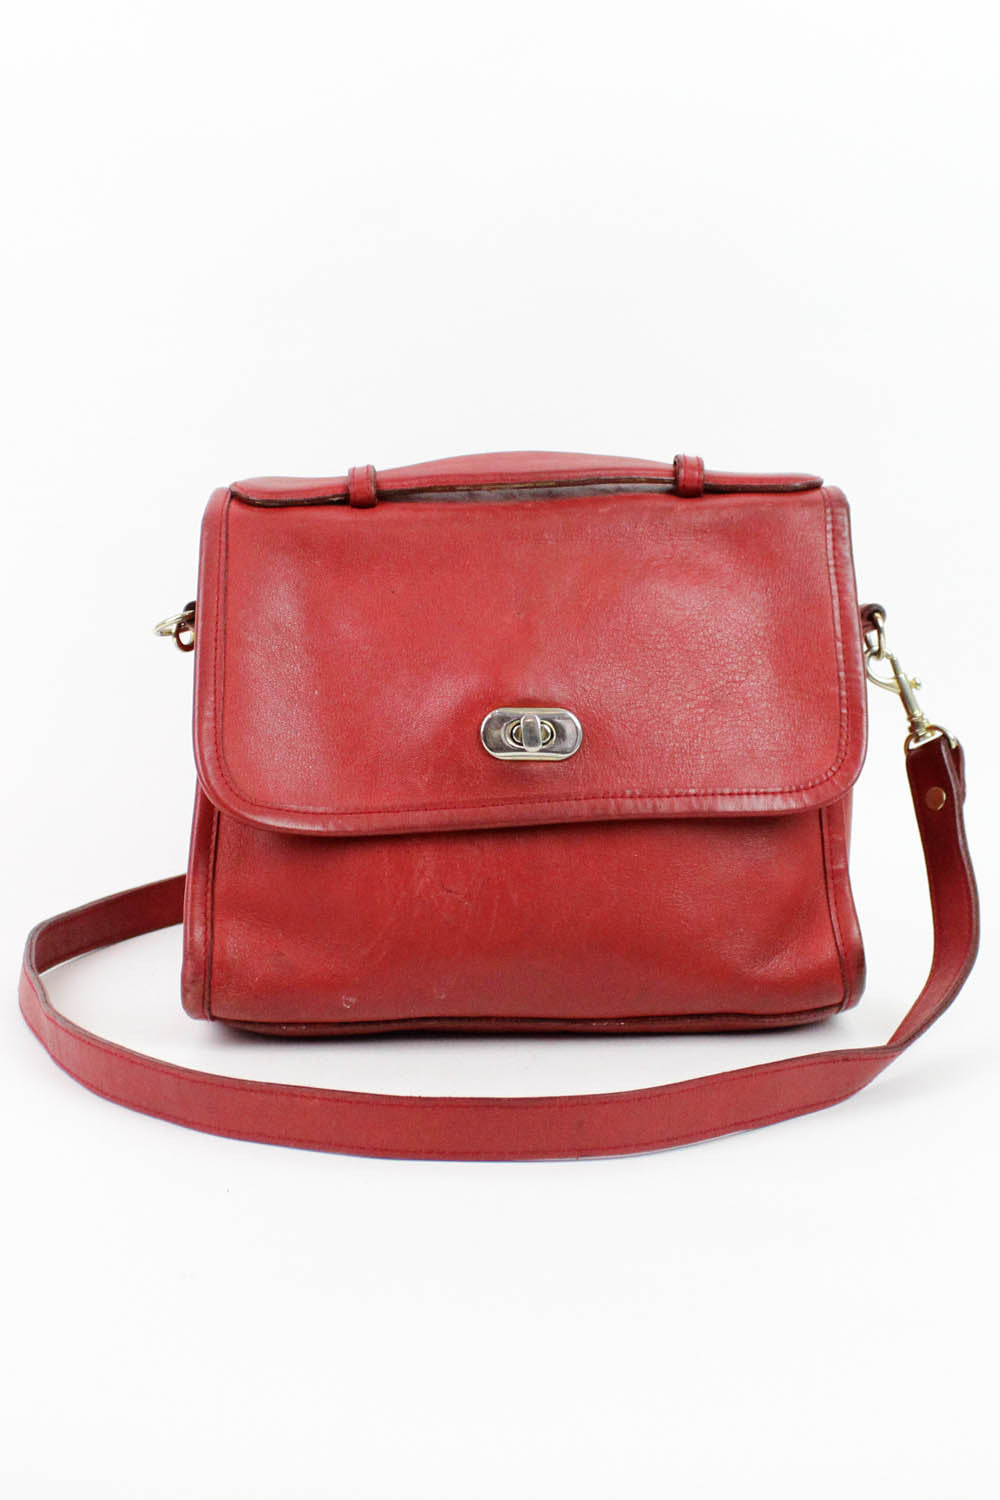 vintage red top handle handbags